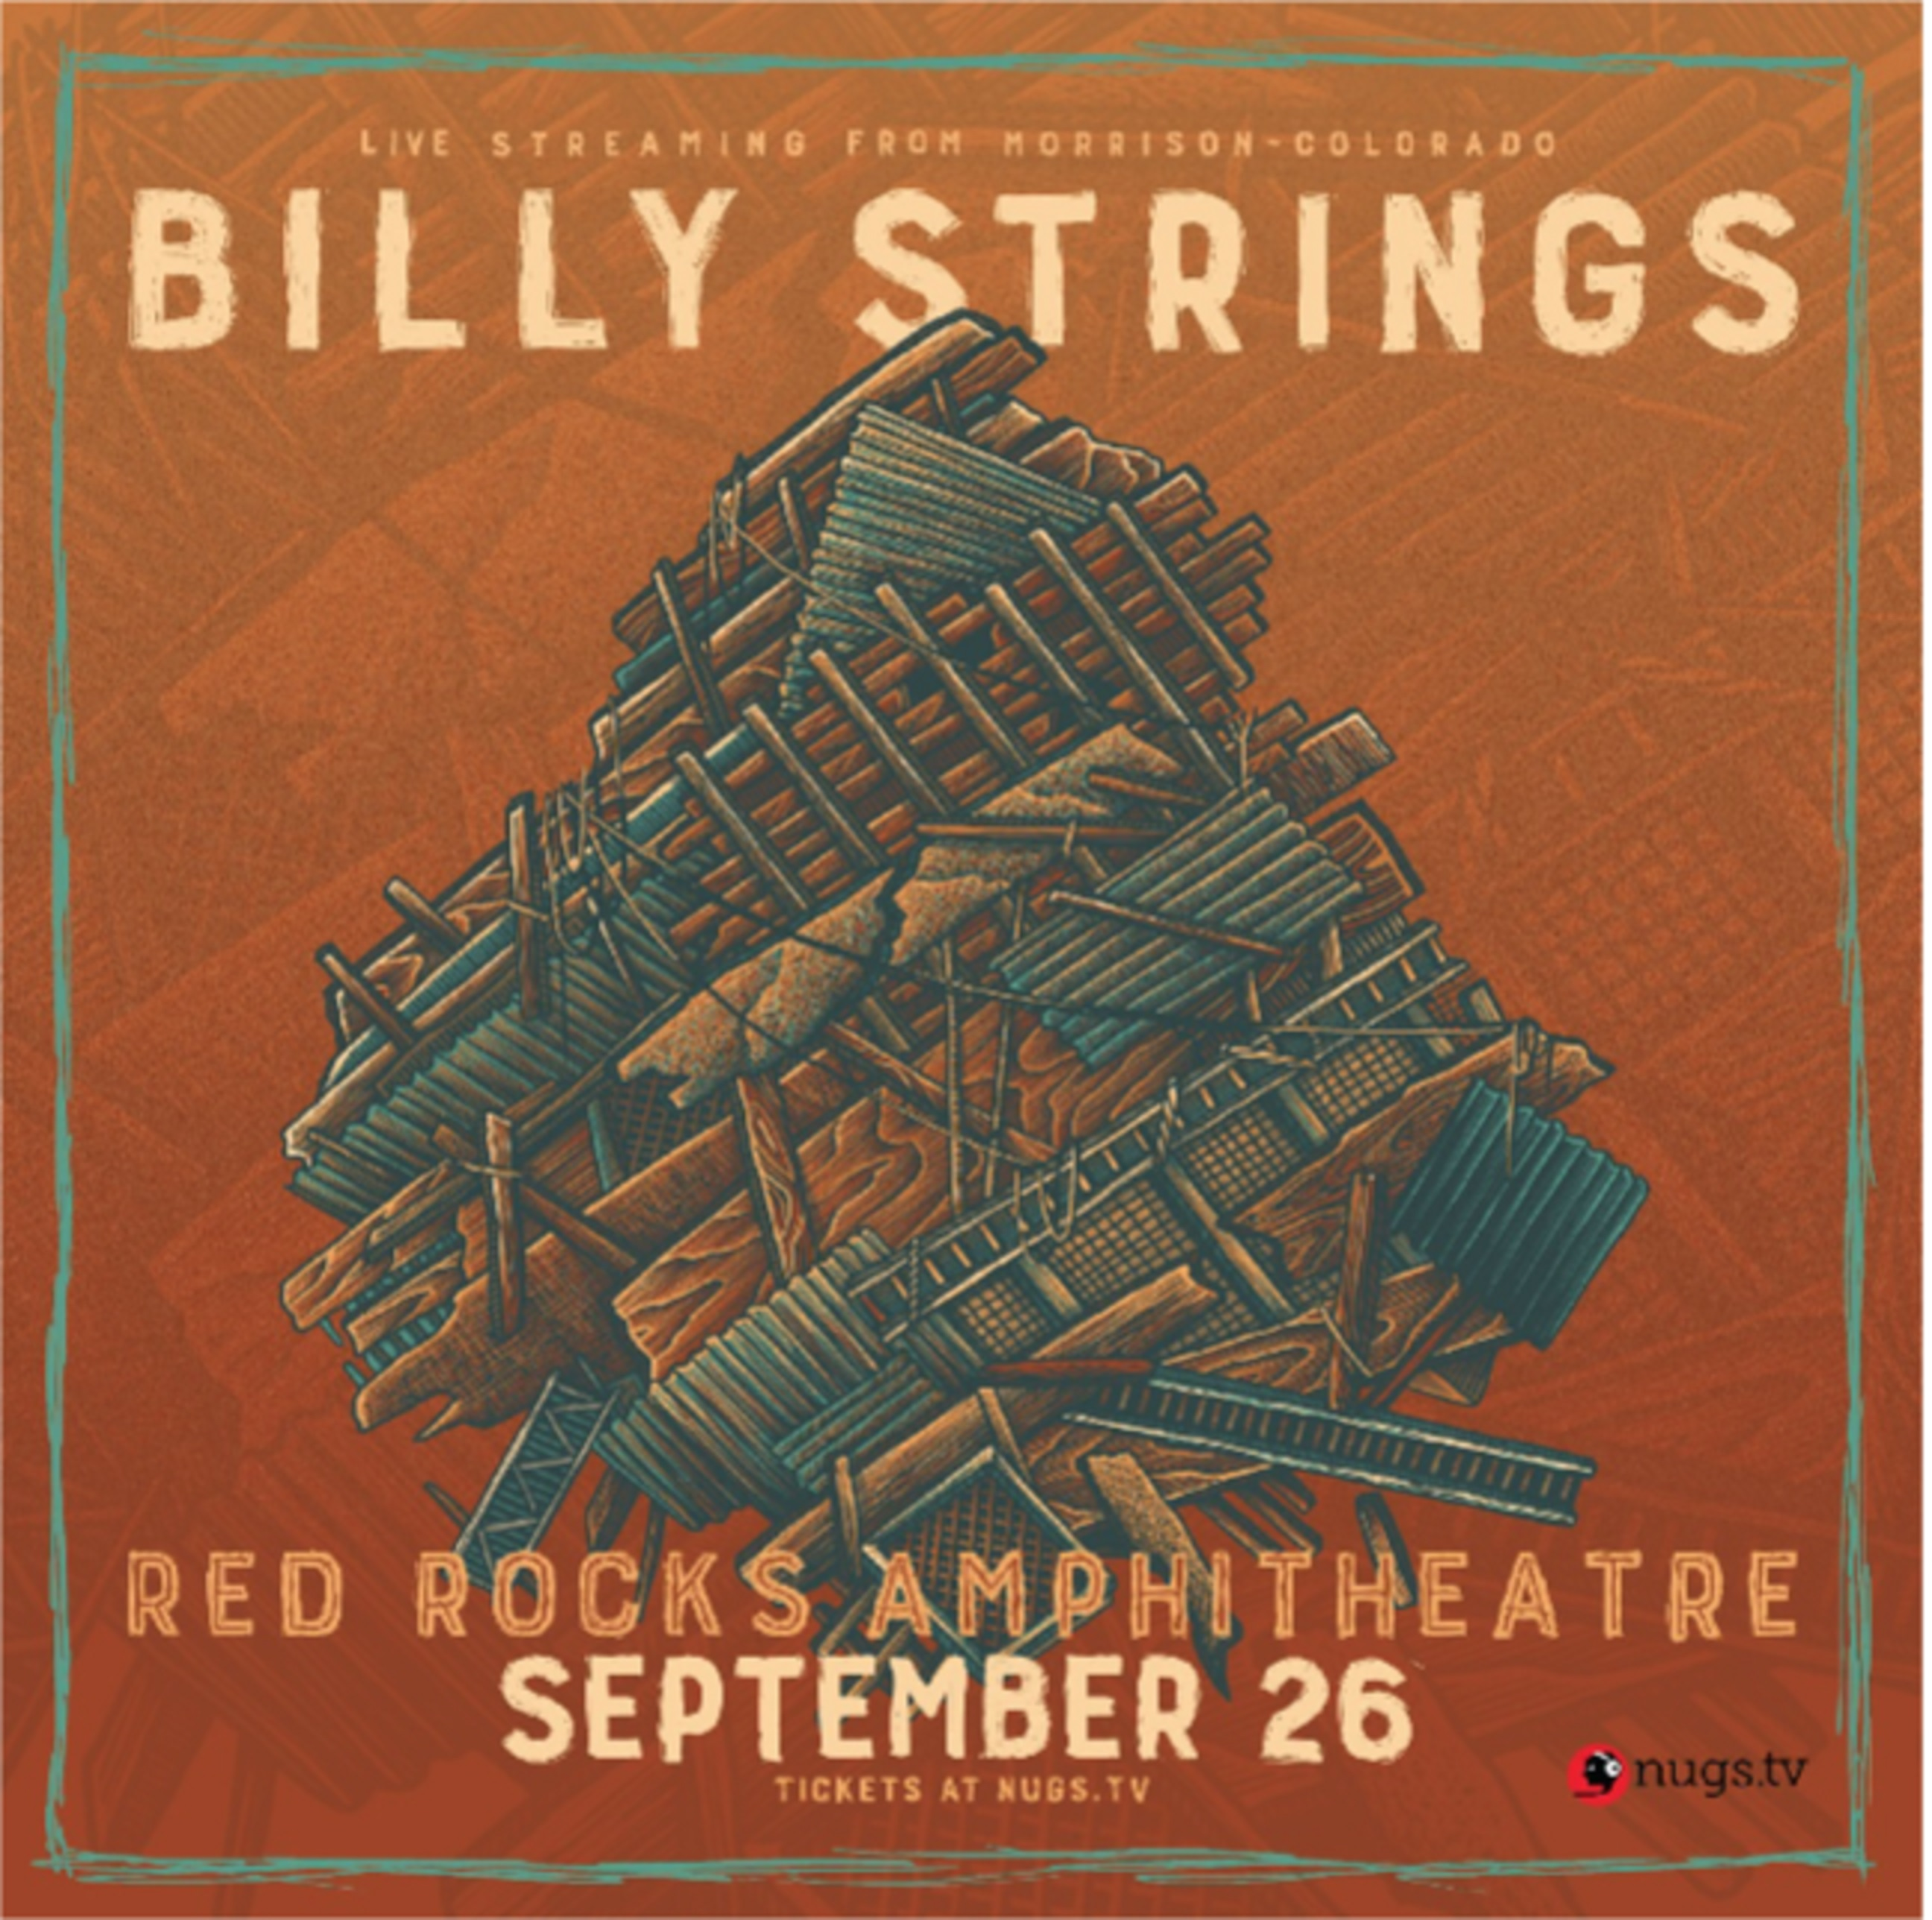 Billy Strings celebrates anniversary of 'Home' with surprise debut headline performance at Red Rocks Live Stream